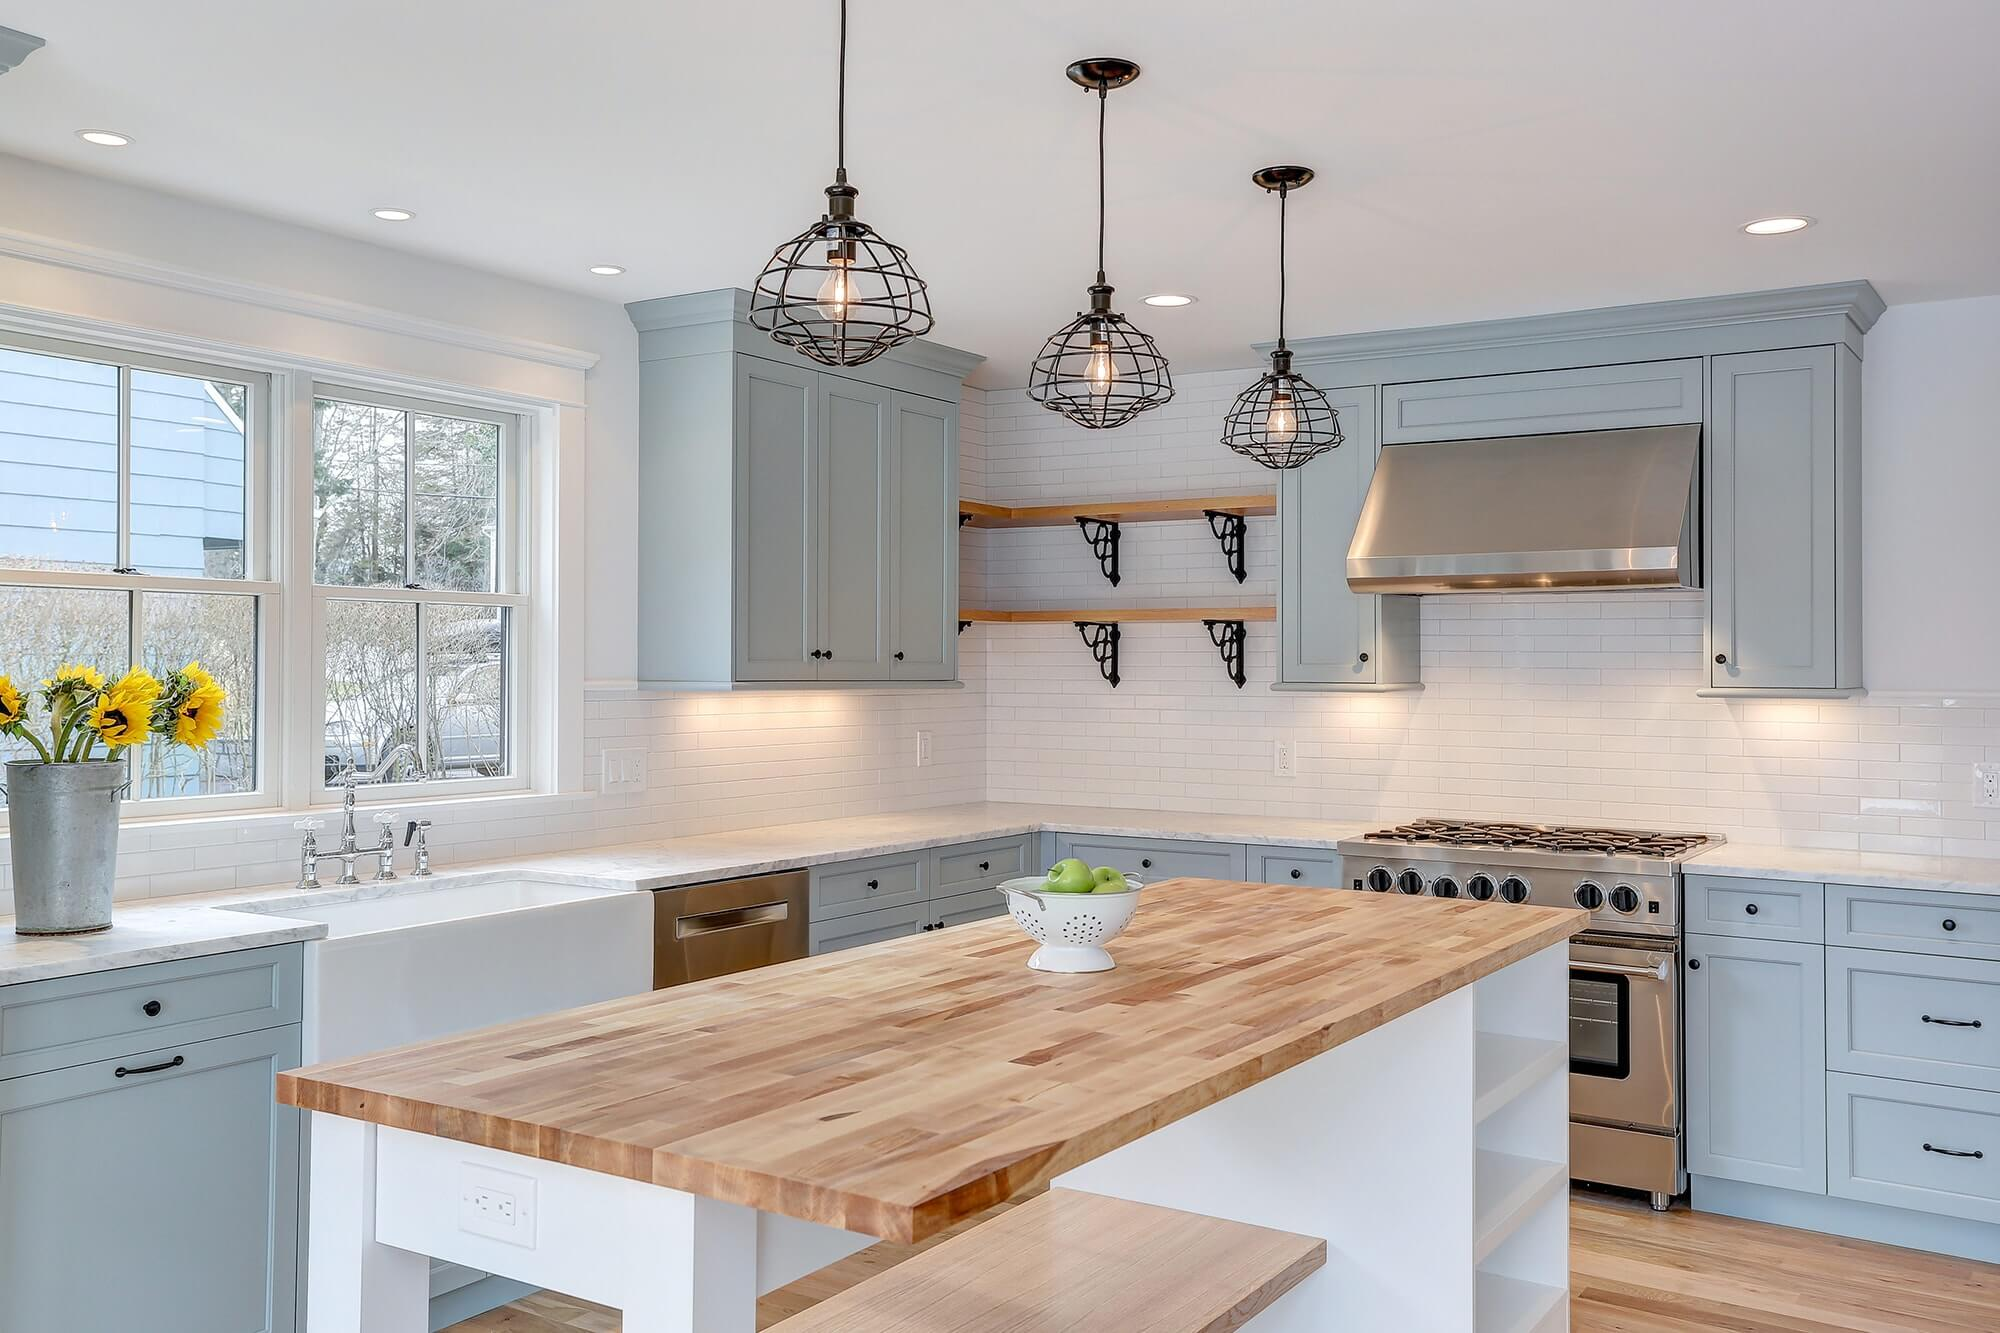 35 Best Farmhouse Kitchen Cabinet Ideas and Designs for 2020 on Farm House Kitchen Ideas  id=88032